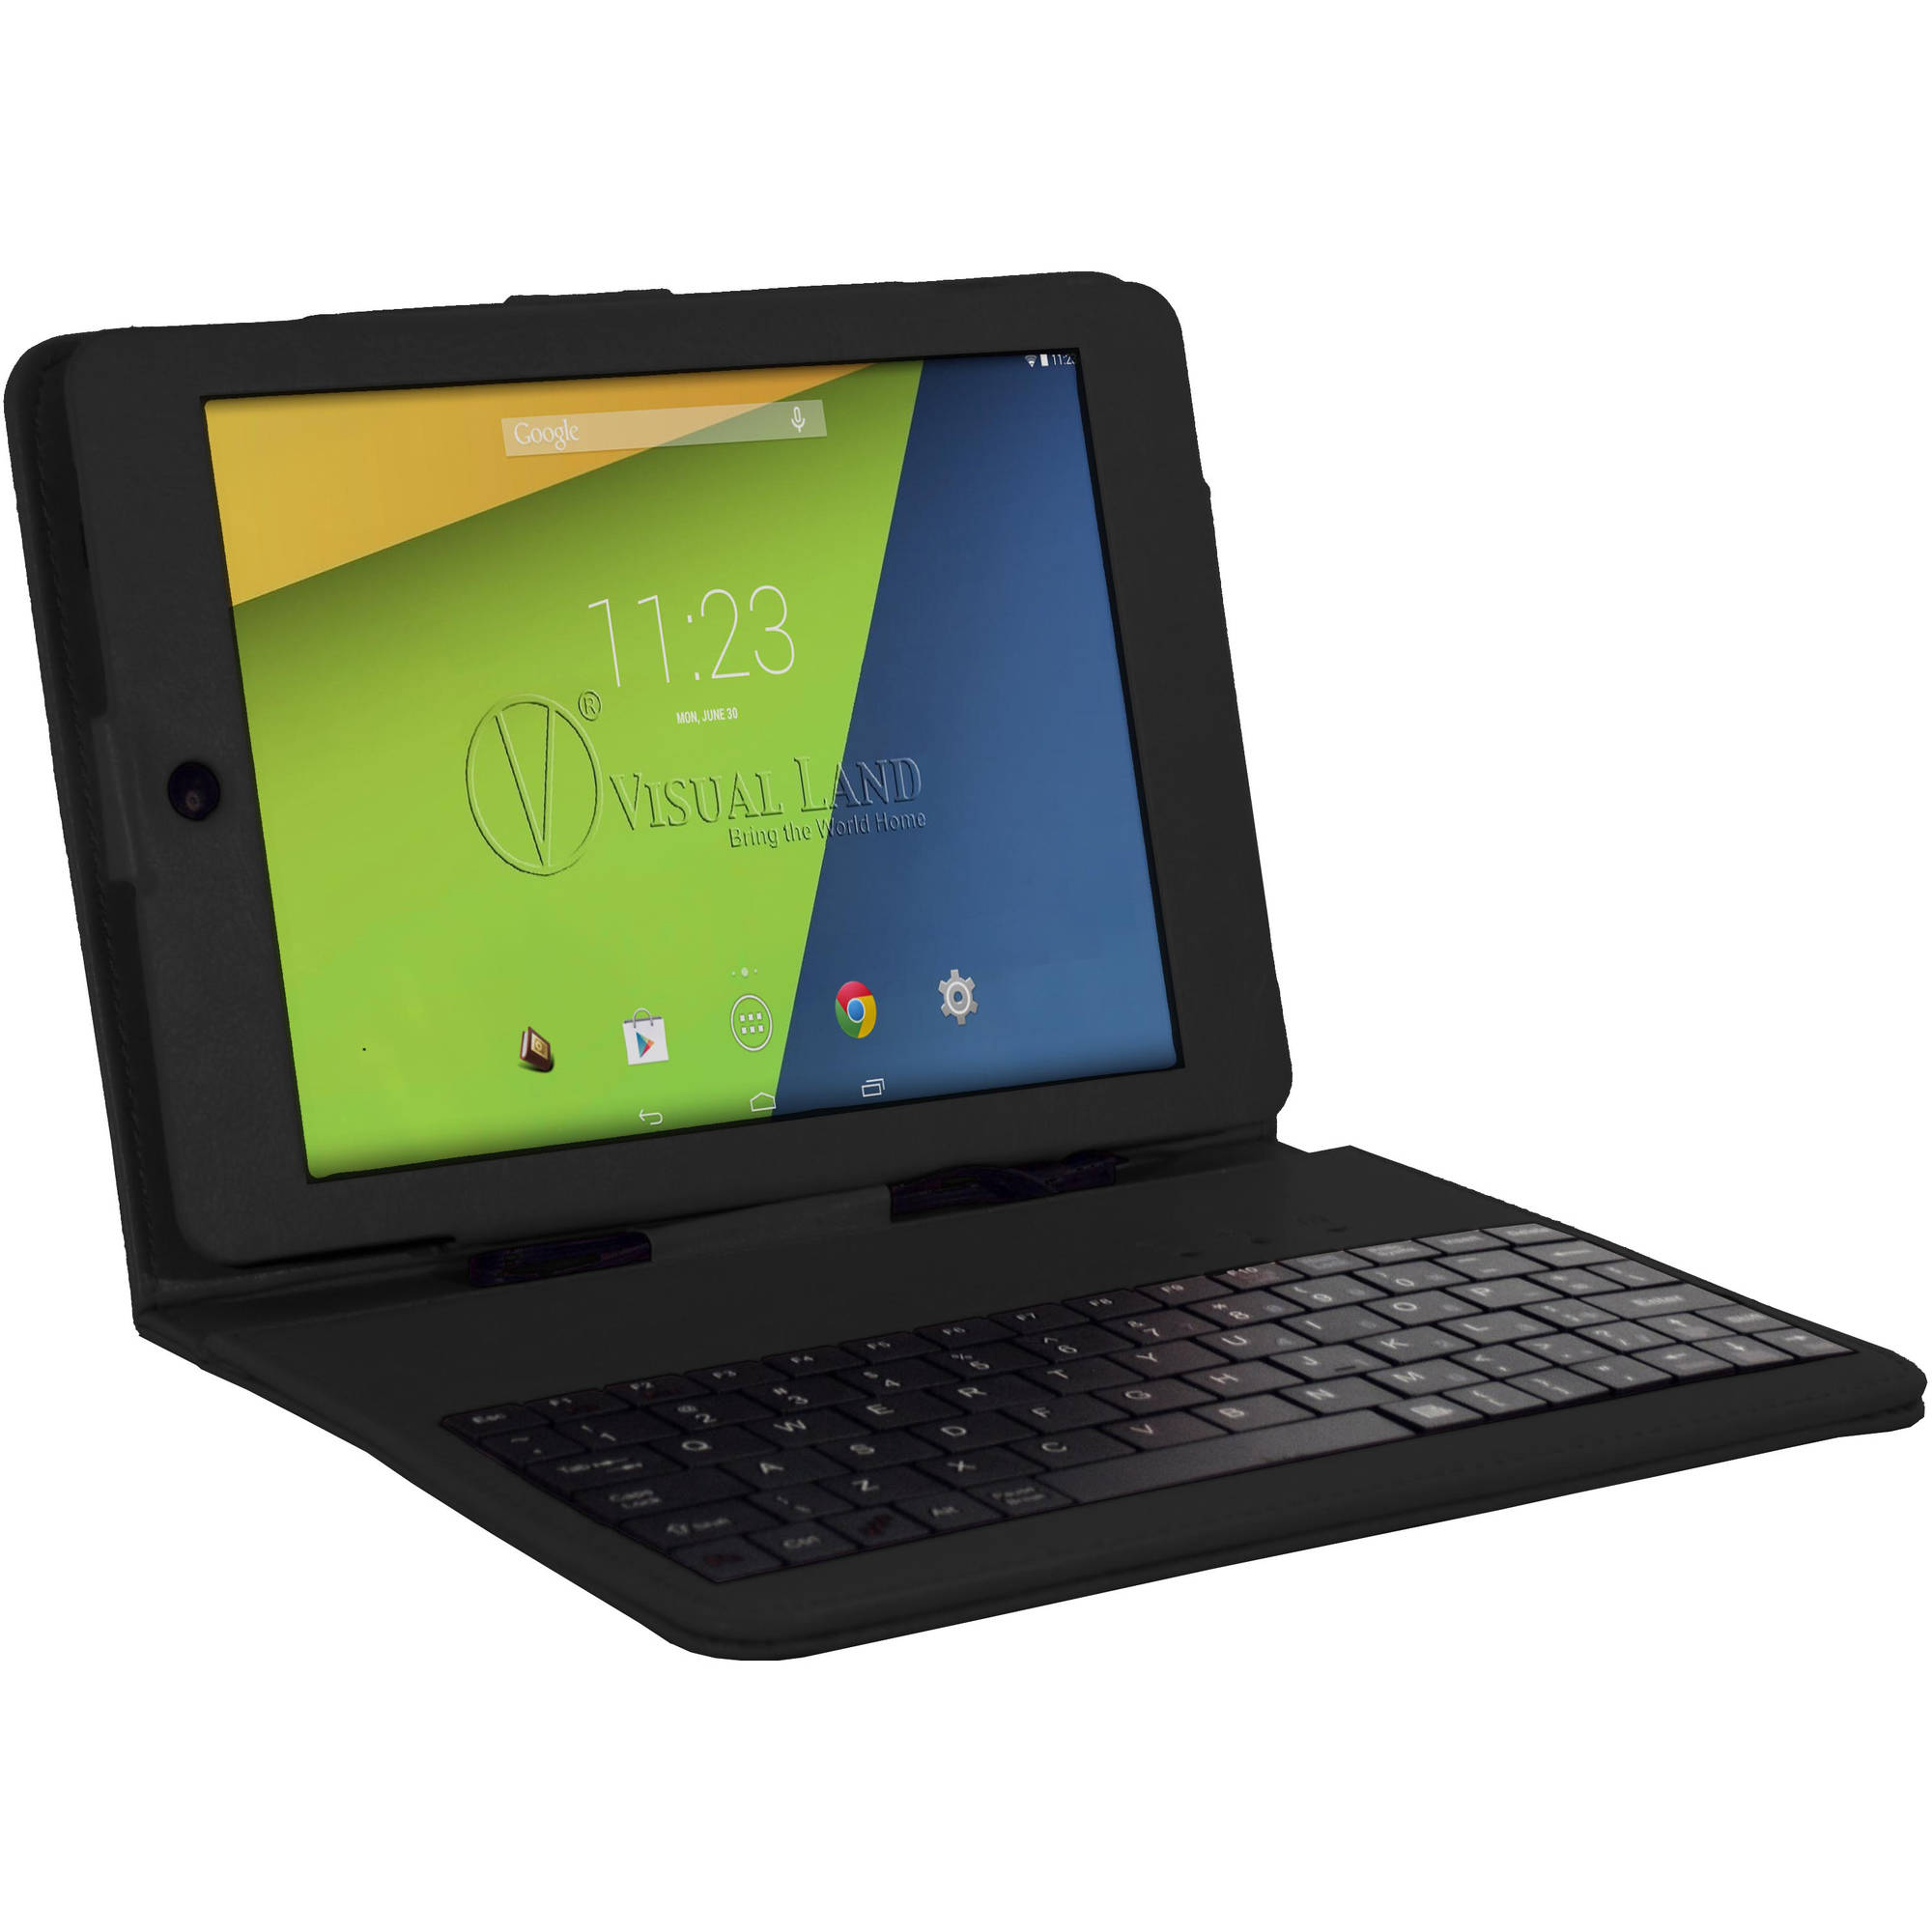 "Visual Land Prestige Elite 8Q with WiFi 8"" Touchscreen Tablet PC Featuring Android 4.4 (KitKat) Operating System"